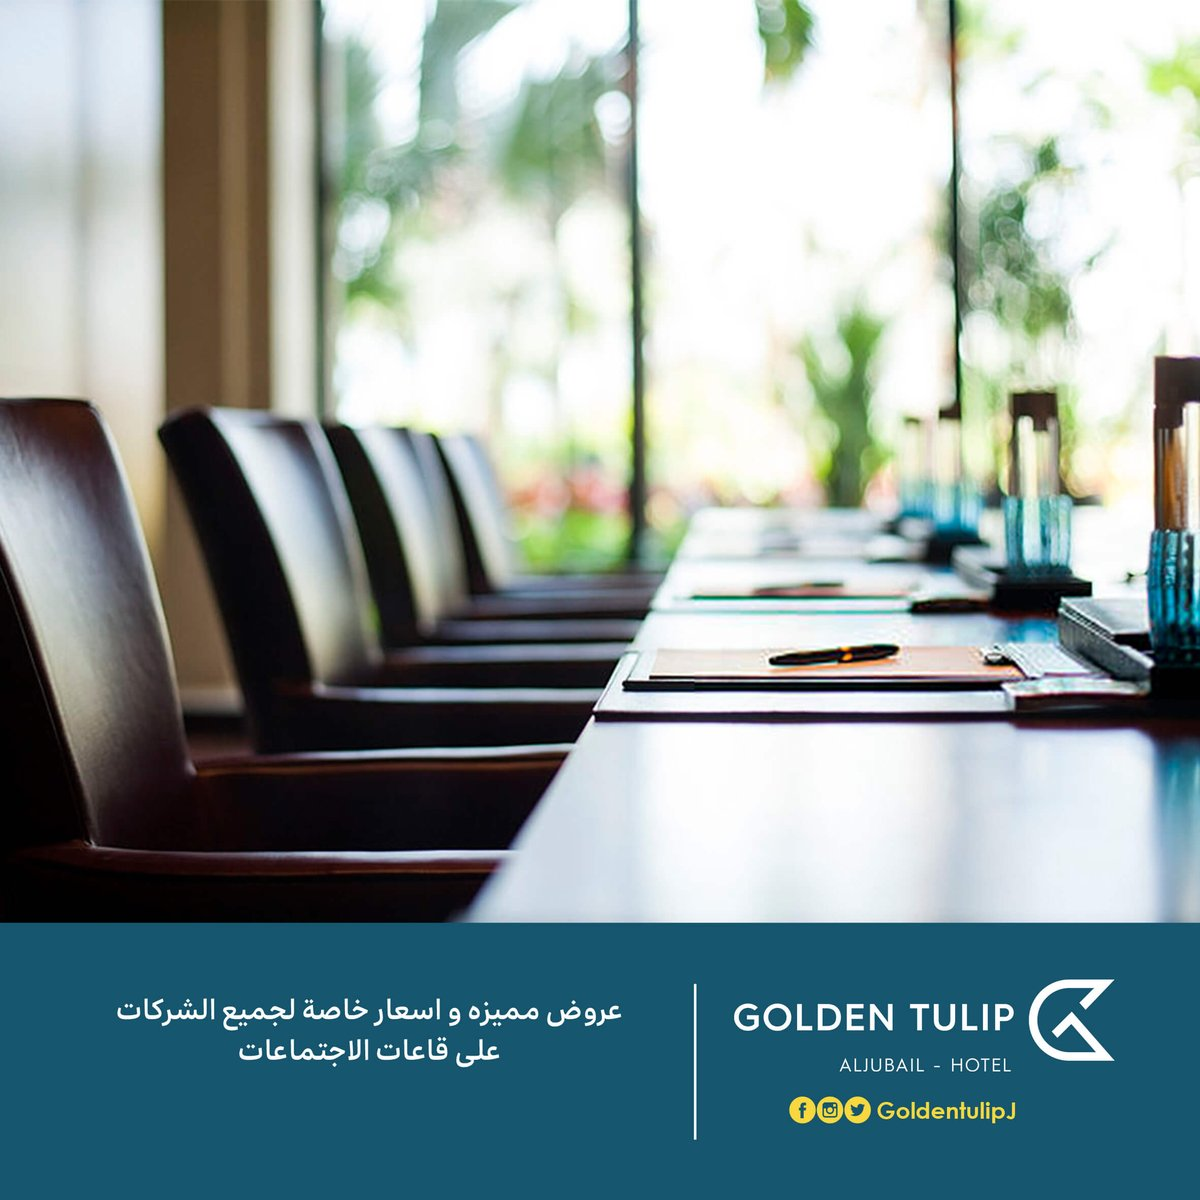 Special offers and special rates for all companies  (coffee break 50-75-100) coffee Break + Lunch 120 2 Coffee break + lunch 140 – coffee break throughout the day 160 - Reservation room only 500 riyals  #فنادق_الشرقية #الجبيل #الجبيل_الان  #الجبيل_الصناعية #فنادق_الجبيل #شركات https://t.co/I2DJqd6gTI